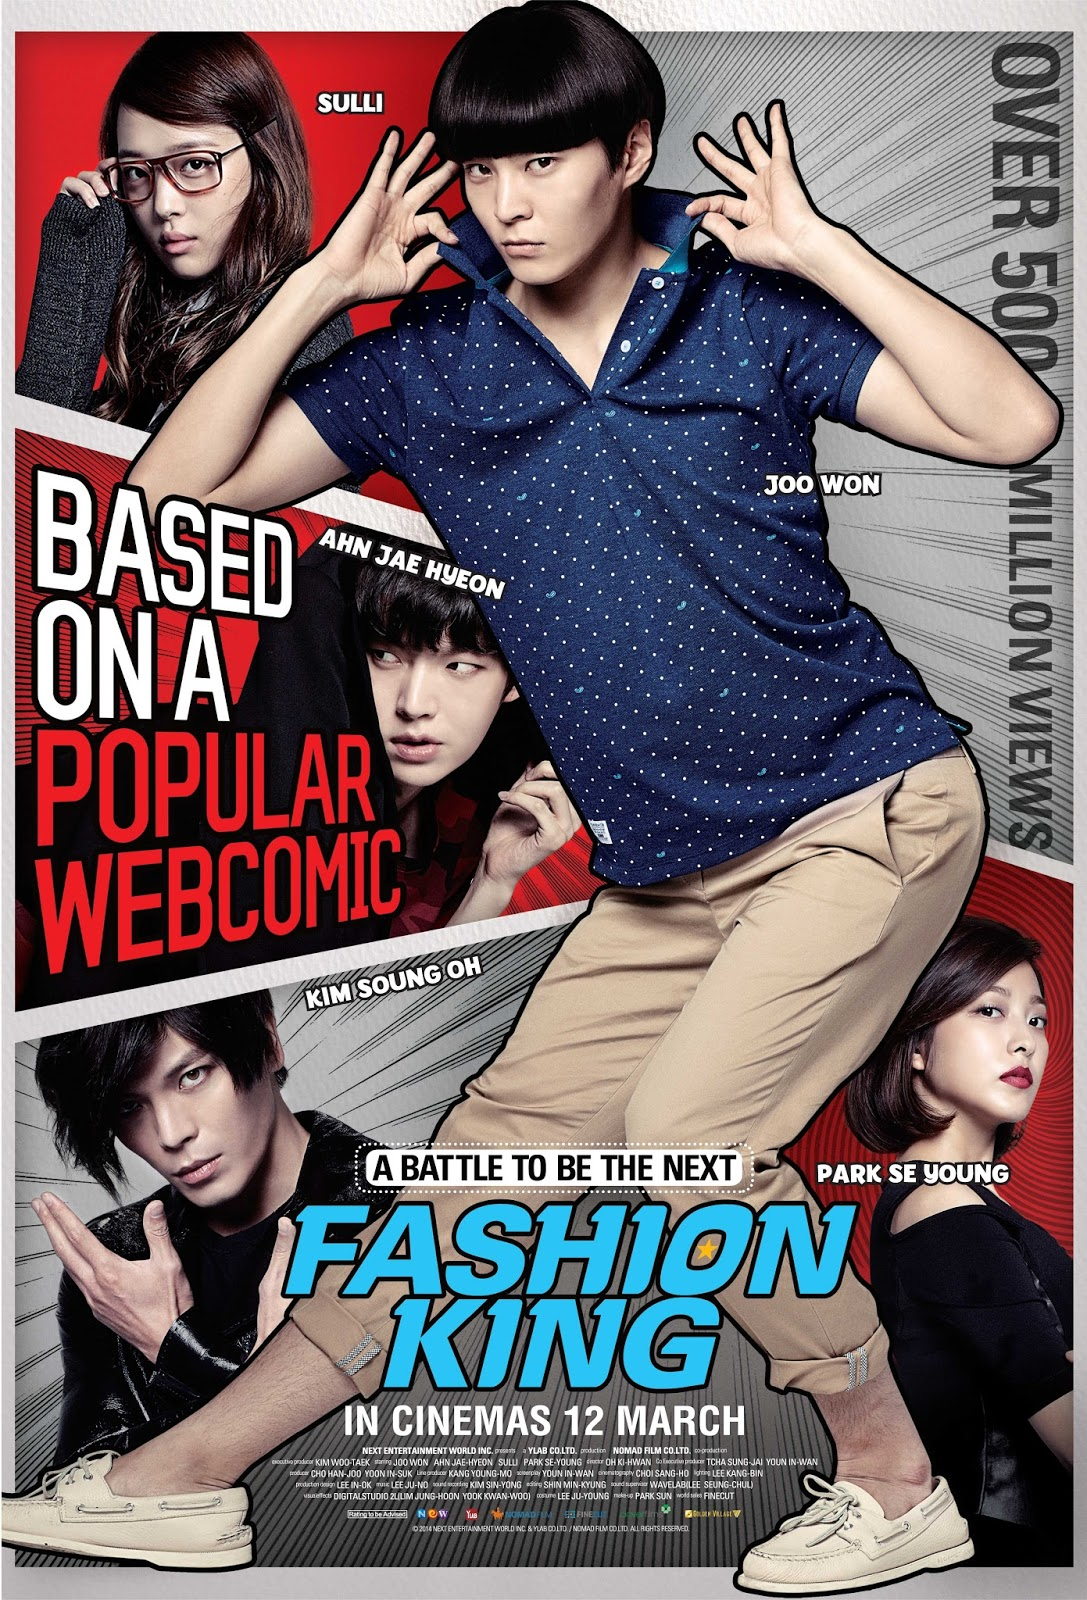 Fashion King (Korean) Movie Poster